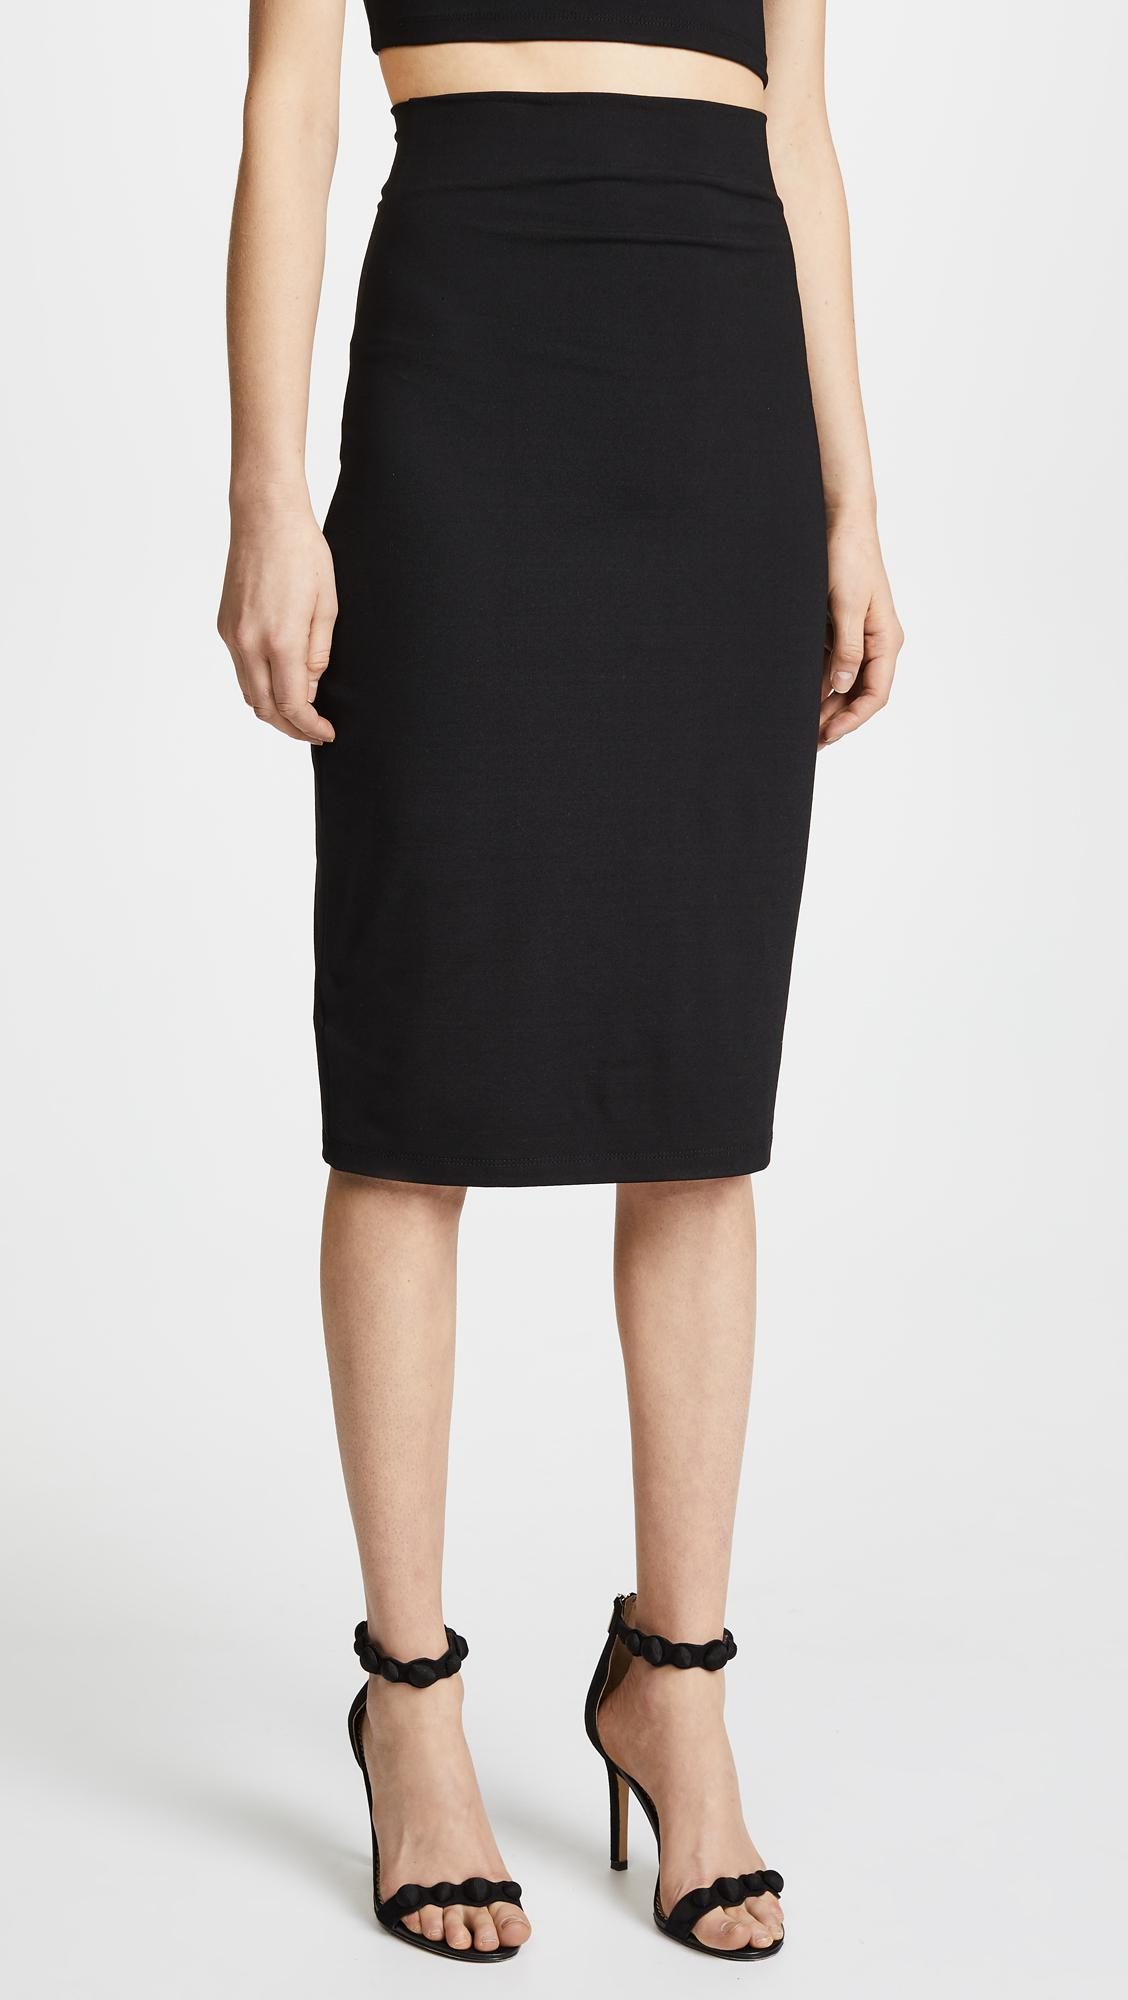 Cheap Price From China Pencil Skirt in Gray Susana Monaco Clearance Collections 7G1j1wGzDt